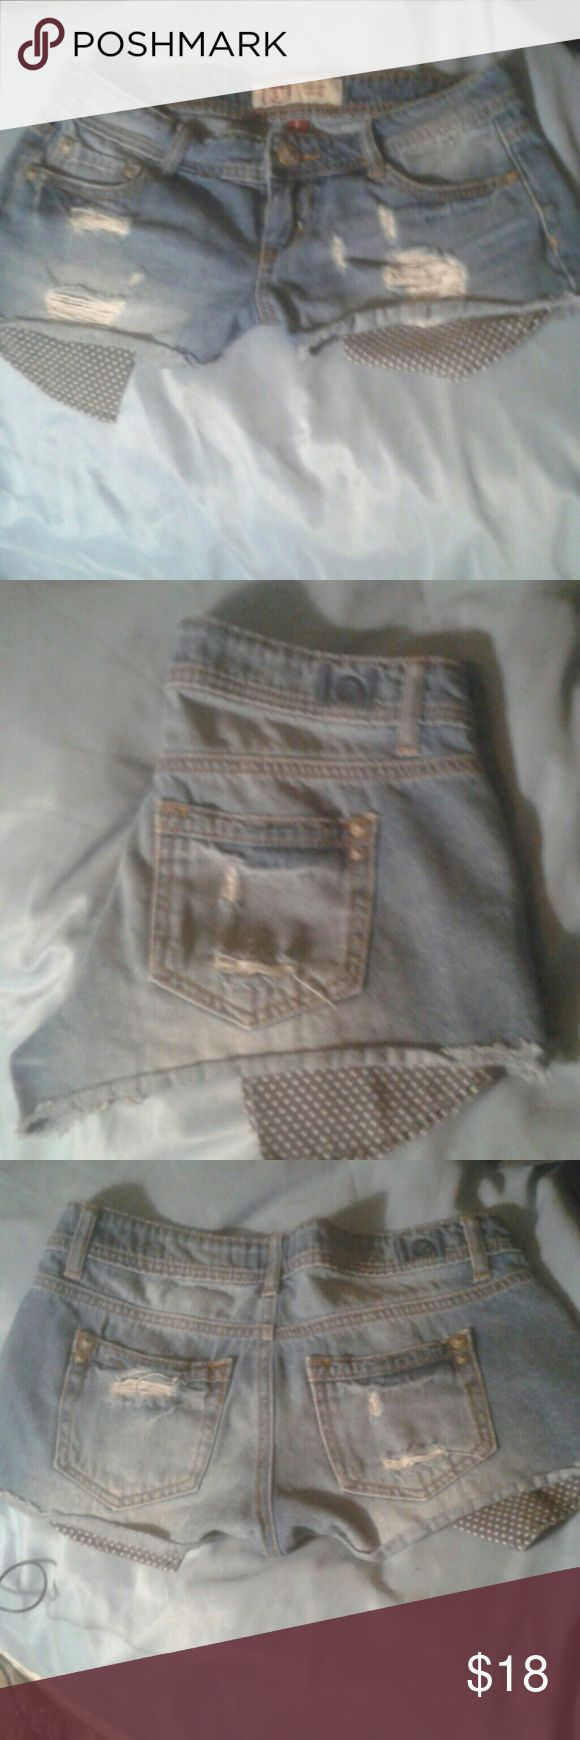 LEI CUTOFF JEAN SHORTS SIZE 1 Hot, Sexy, Cutoff, Head Turning, Ripped LEI Ashley Lowrise Blue Jean Shorts Size 1. Worn once! l.e.i.  Shorts Jean Shorts